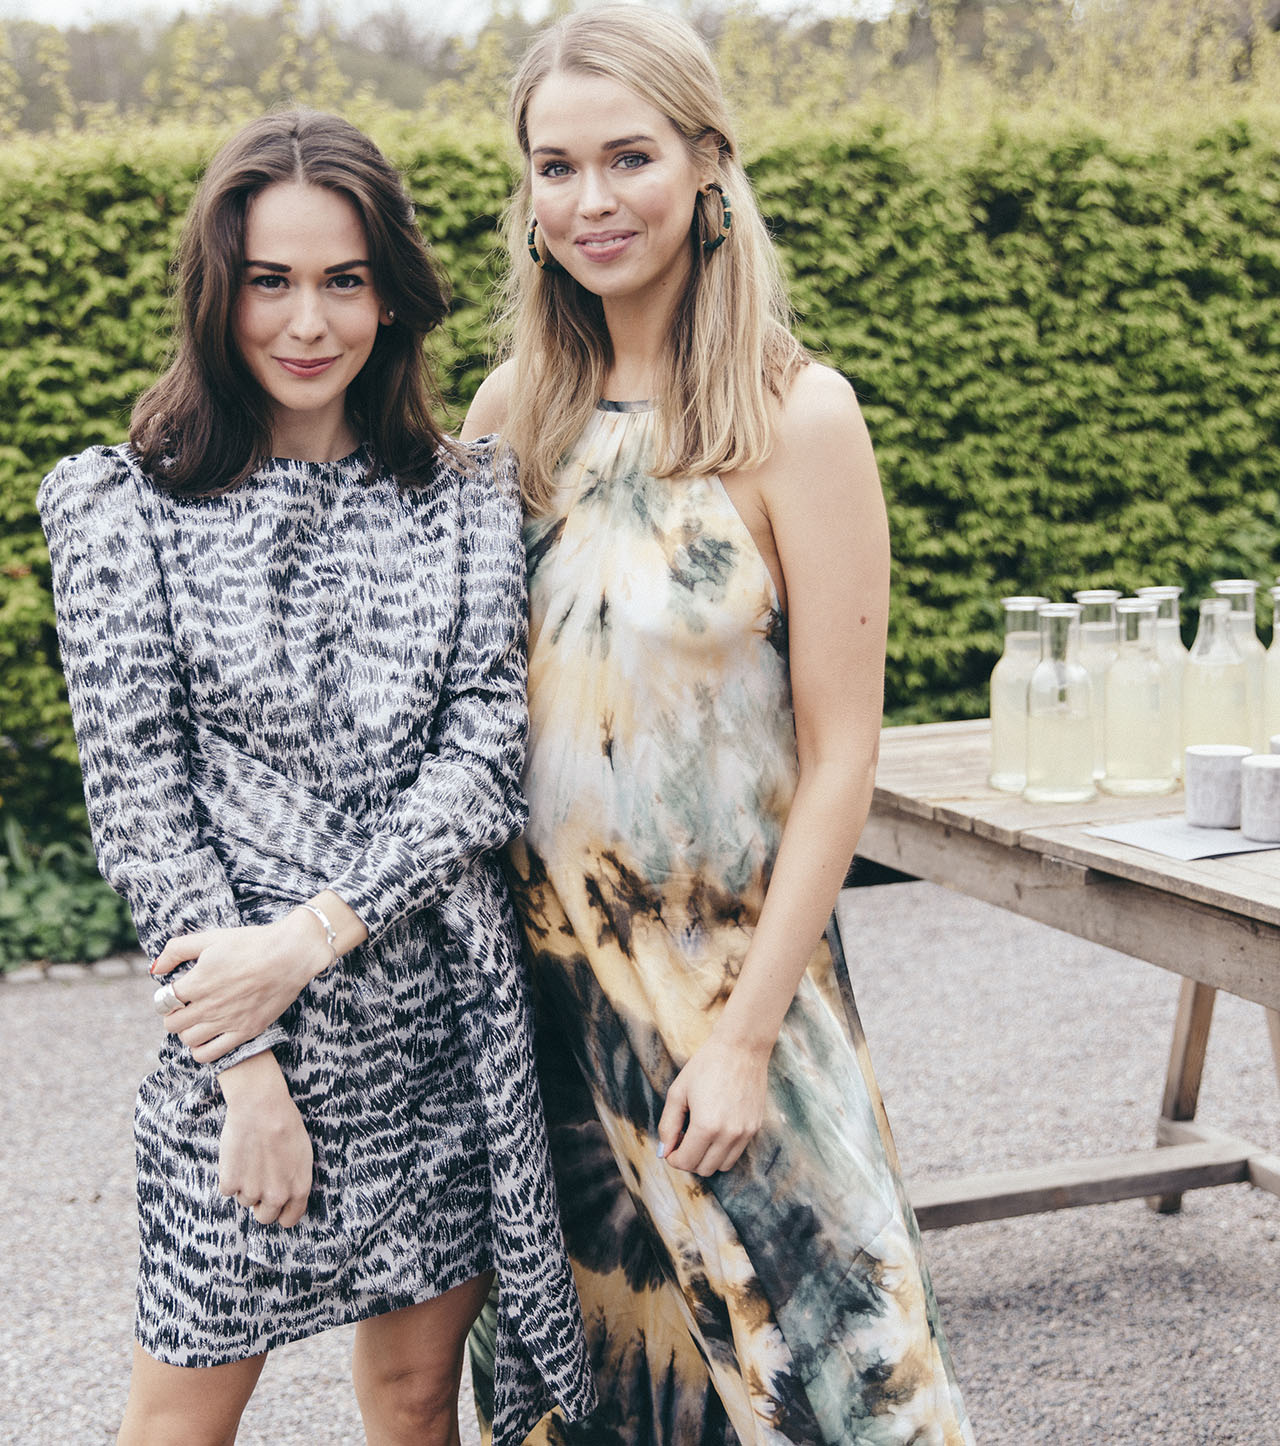 Therese Hellström (left) and Clara Hallencreutz (right). Mateus Meets Fashion 2019, Stockholm, Sweden. Photo by Rasmus Lindahl © Mateus.